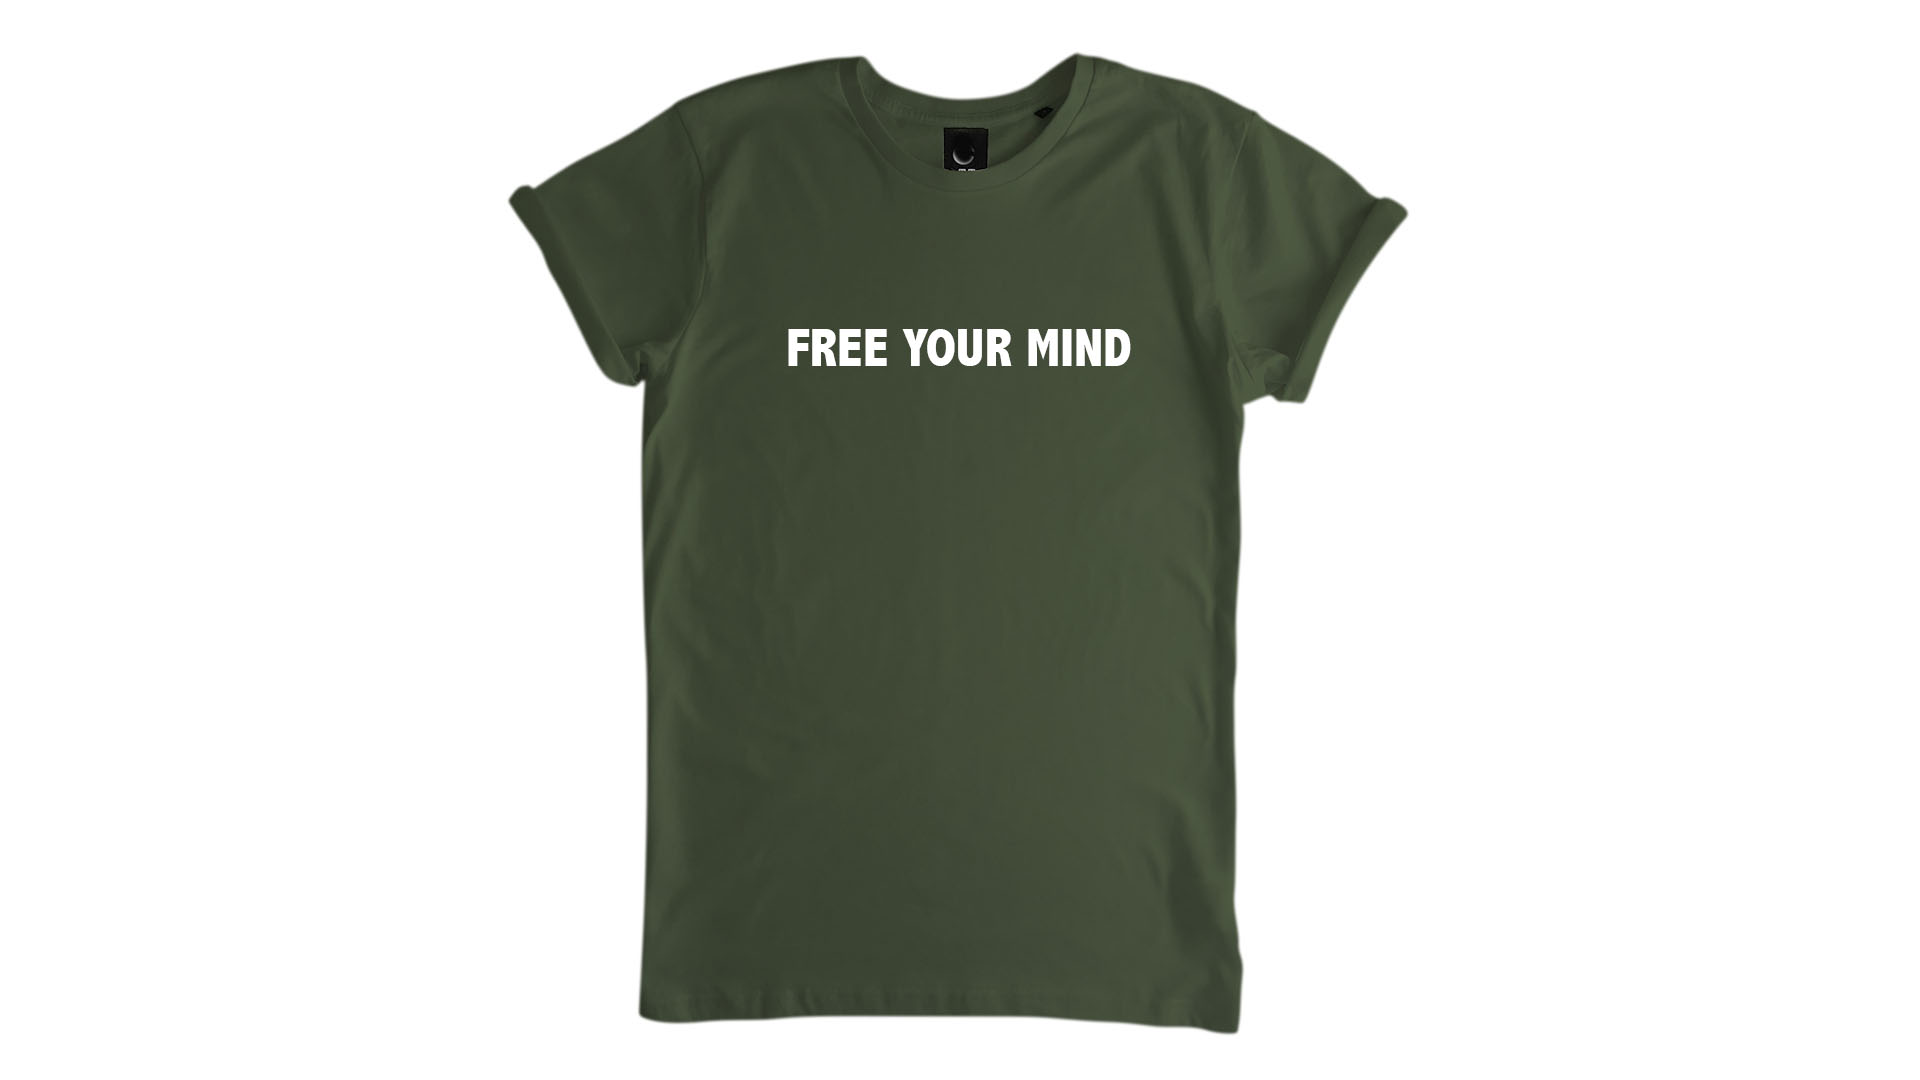 LiveLearn.Yoga Yoga T-Shirt Organic Cotton Free Your Mind Green